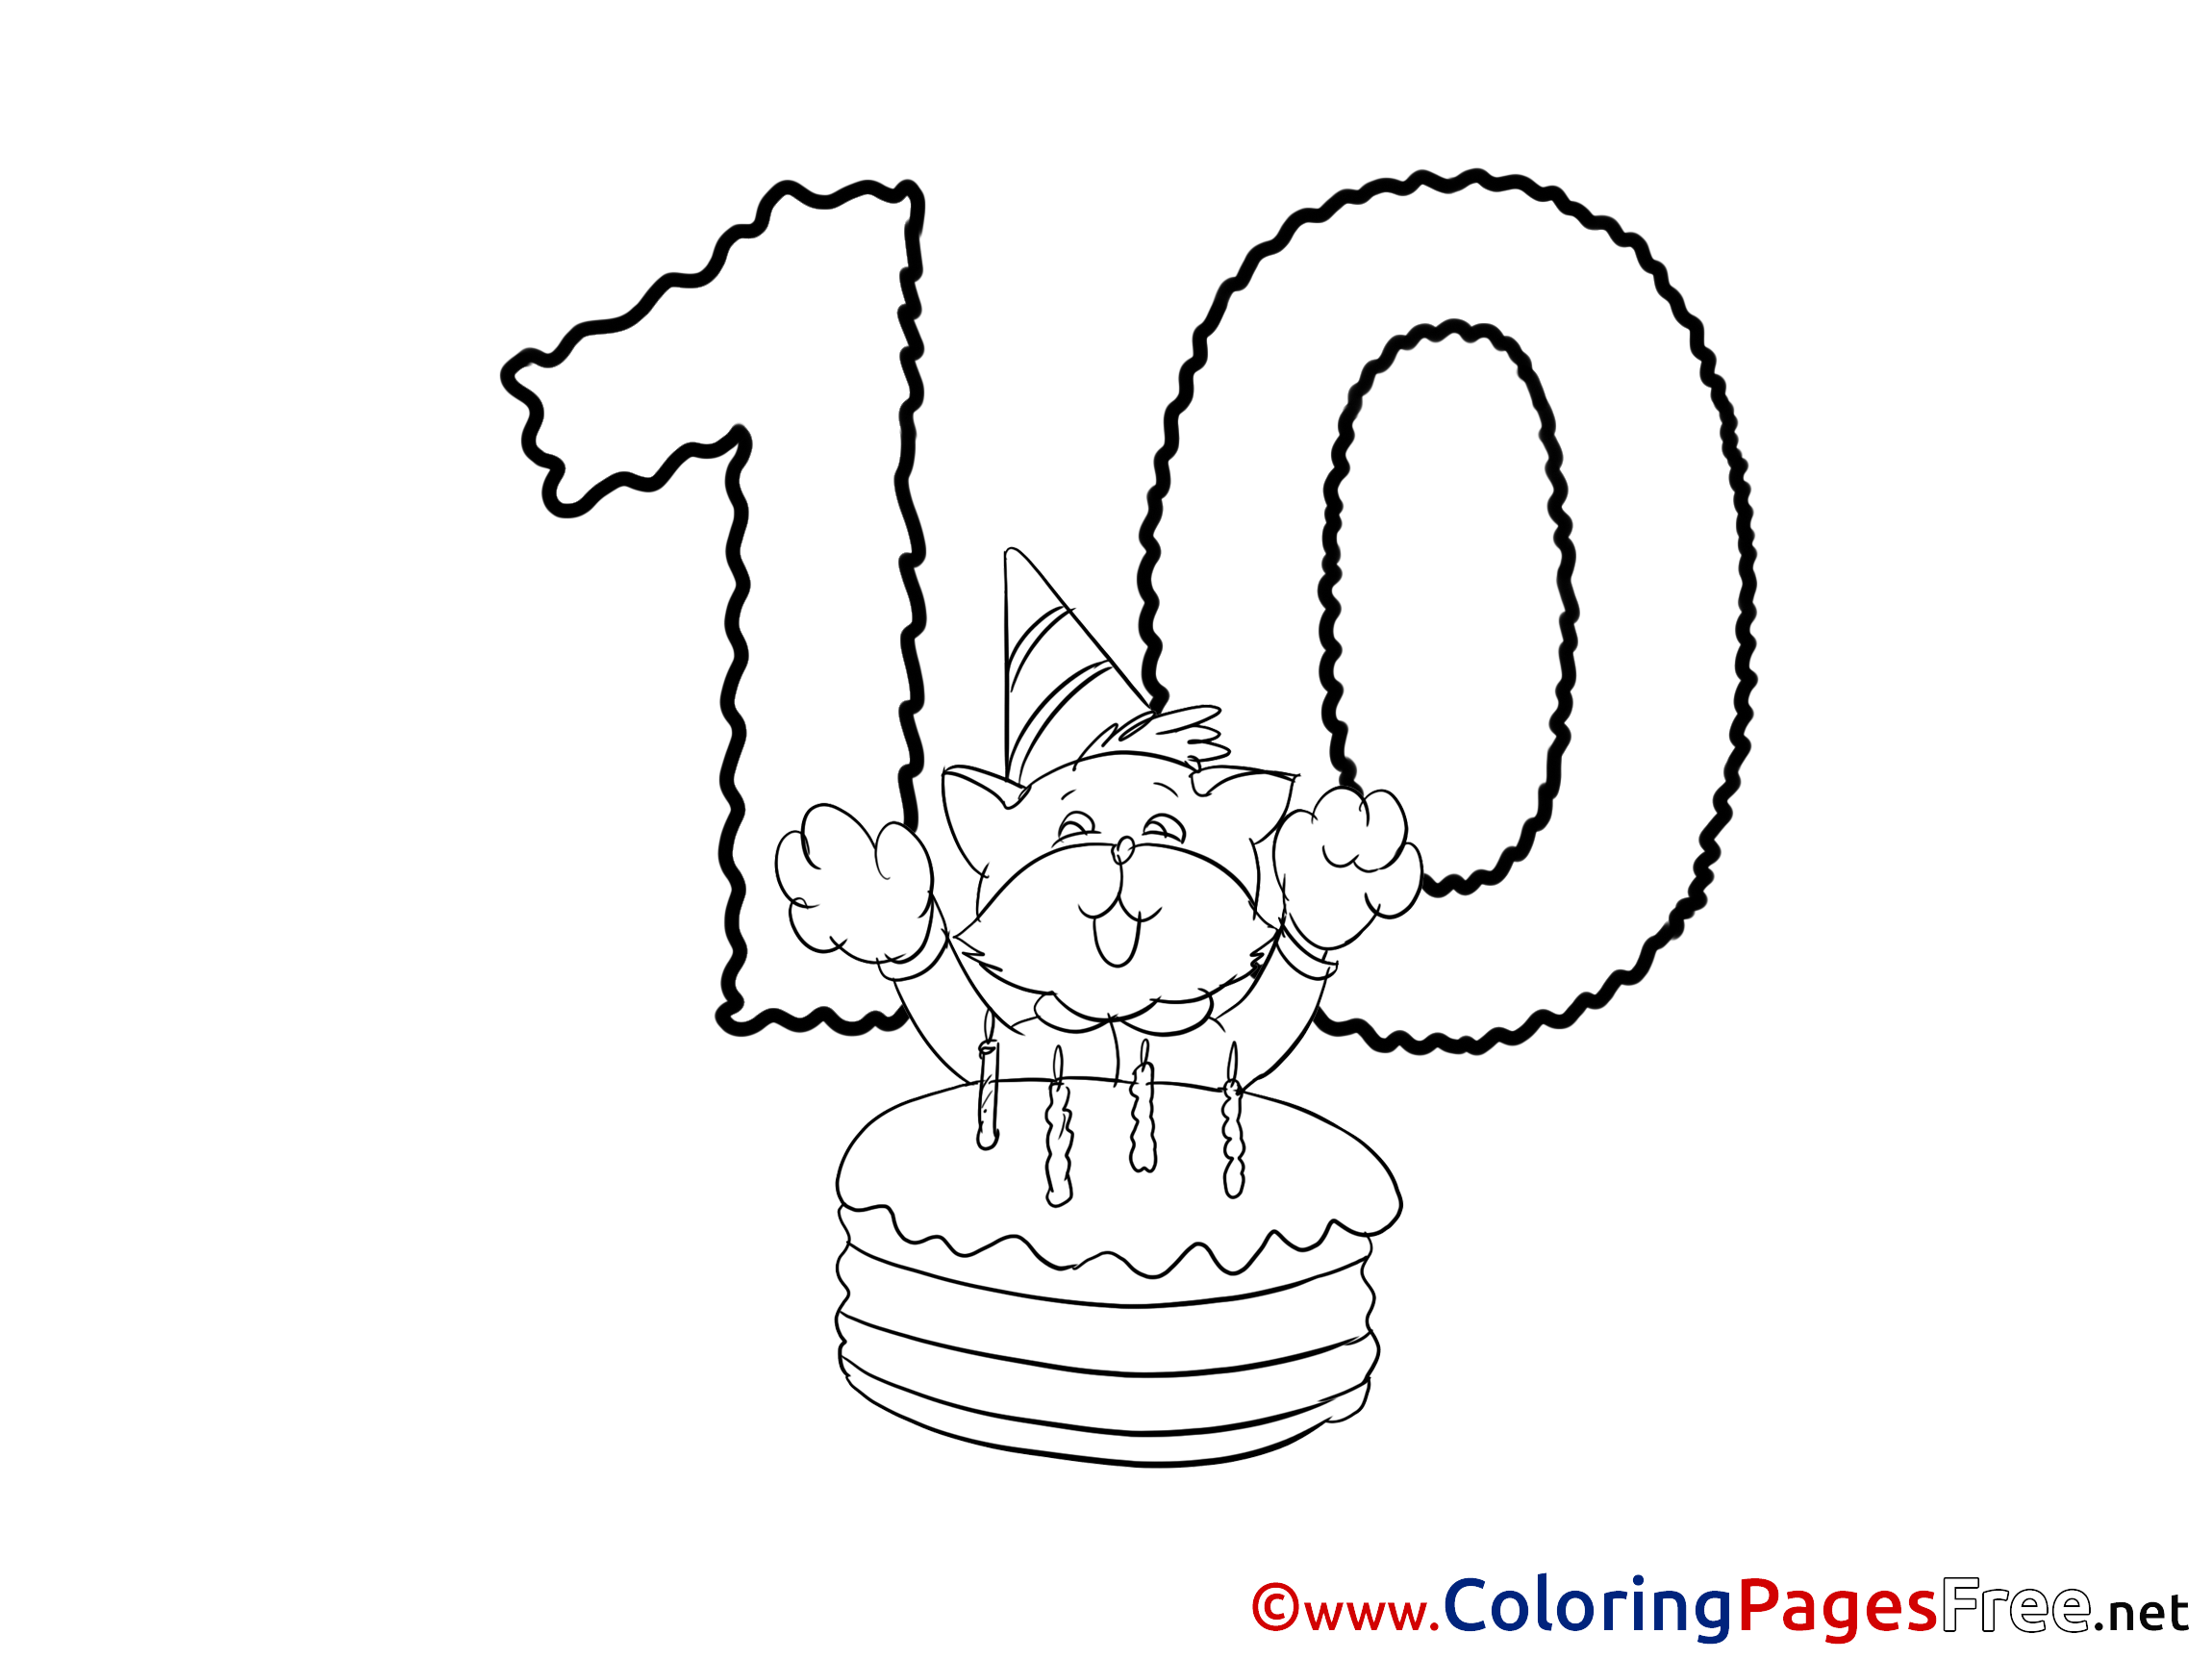 happy birthday cat coloring page cat 10 years happy birthday colouring sheet free cat happy coloring page birthday